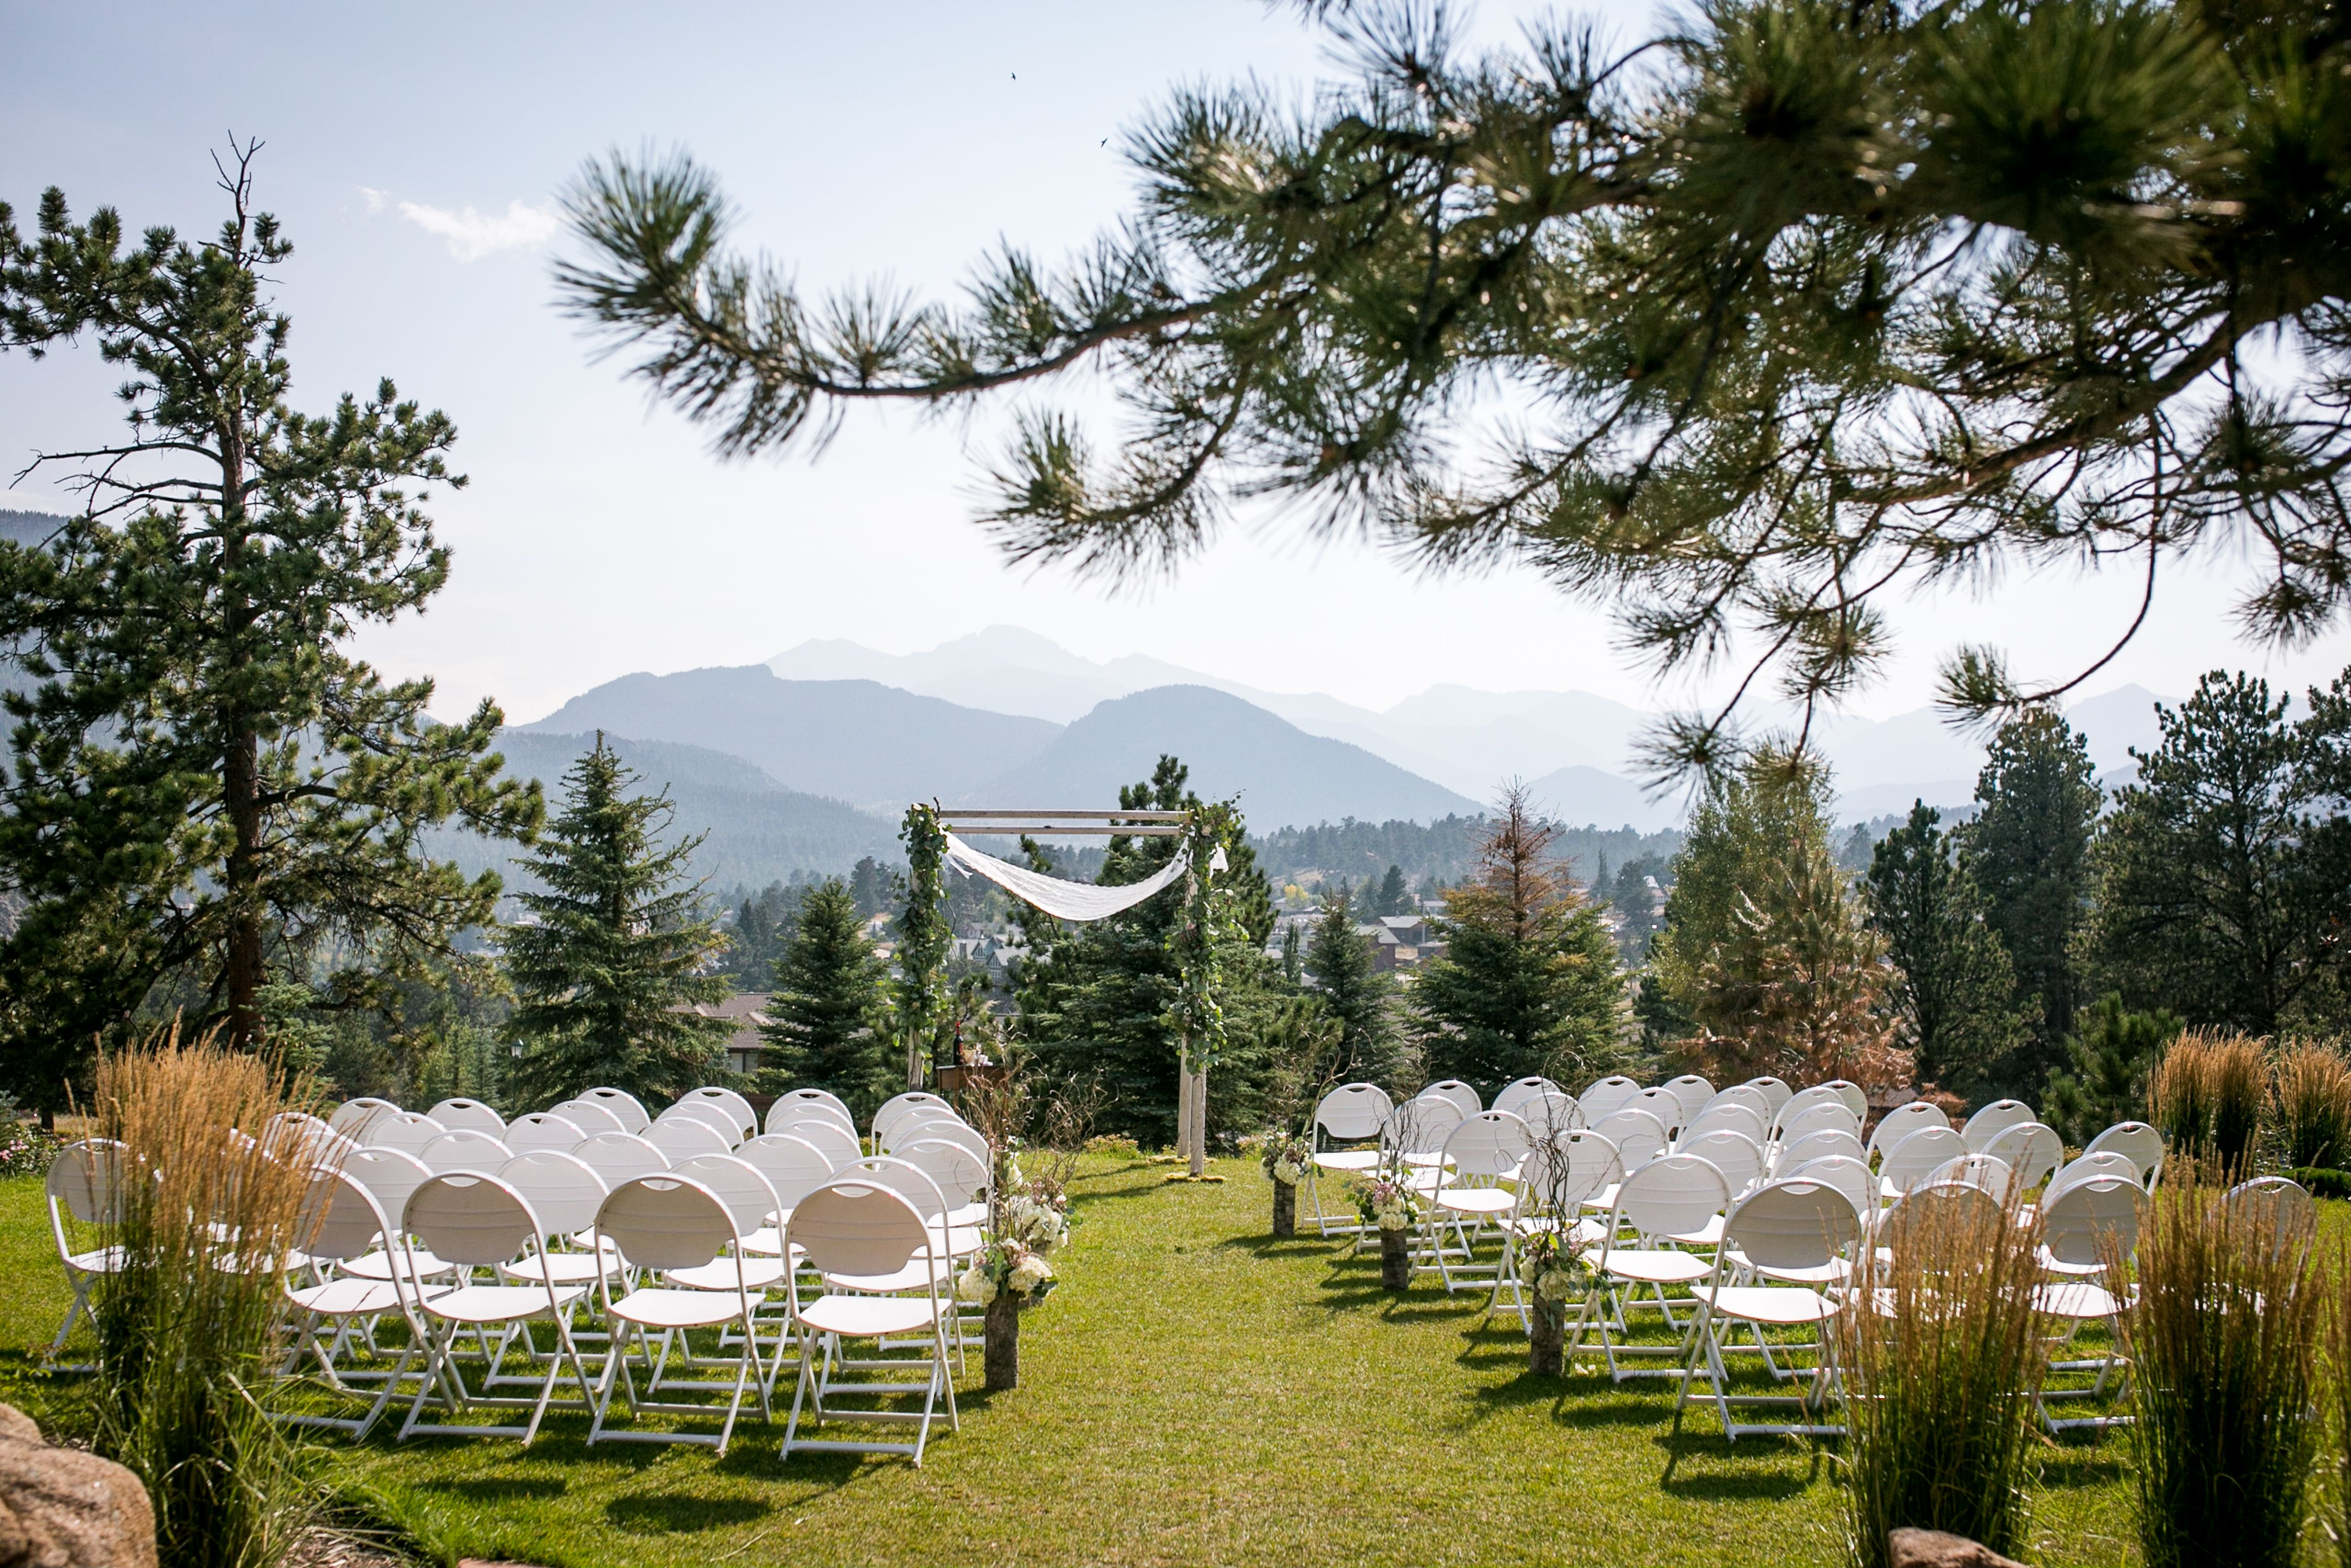 Pictures of Weddings at the Stanley Hotel Colorado